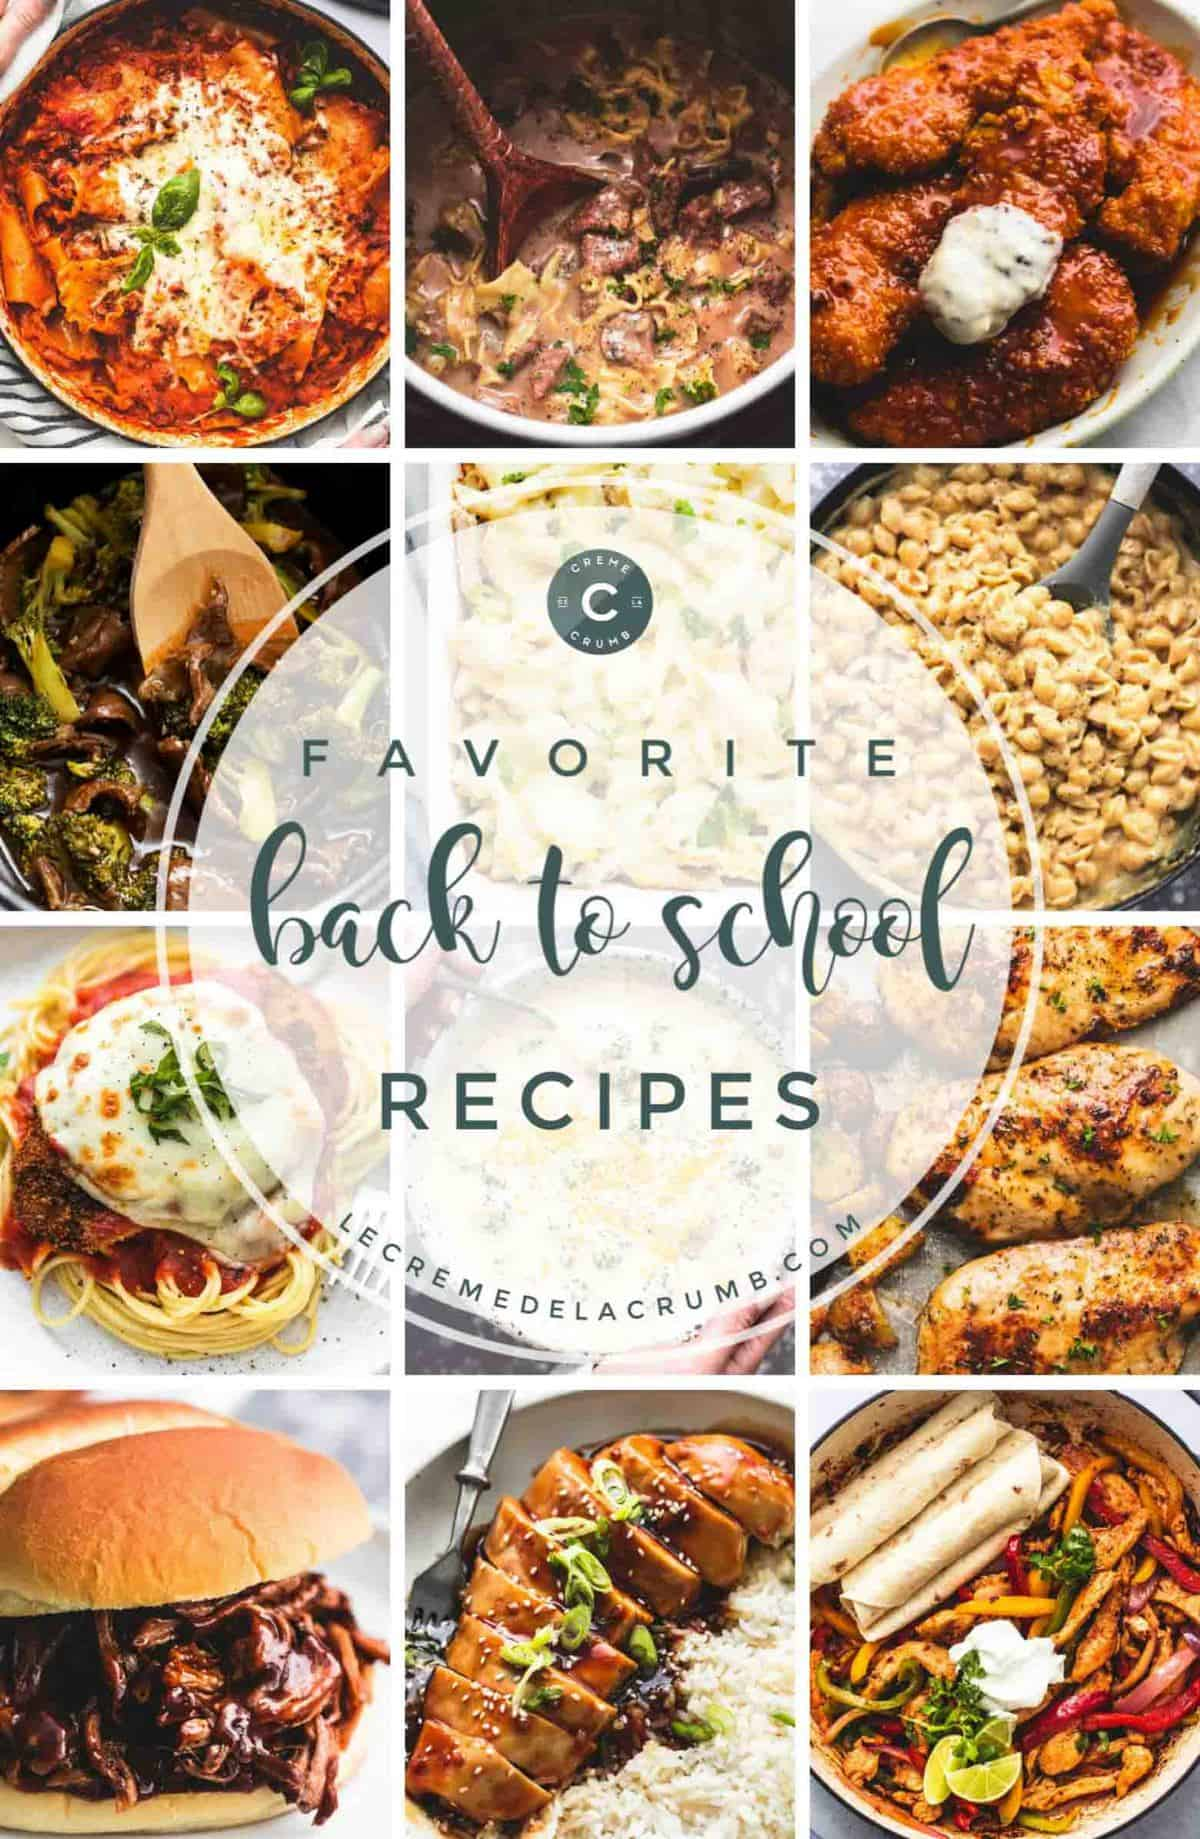 Easy and Family Friendly Back to School Recipes | lecremedelacrumb.com